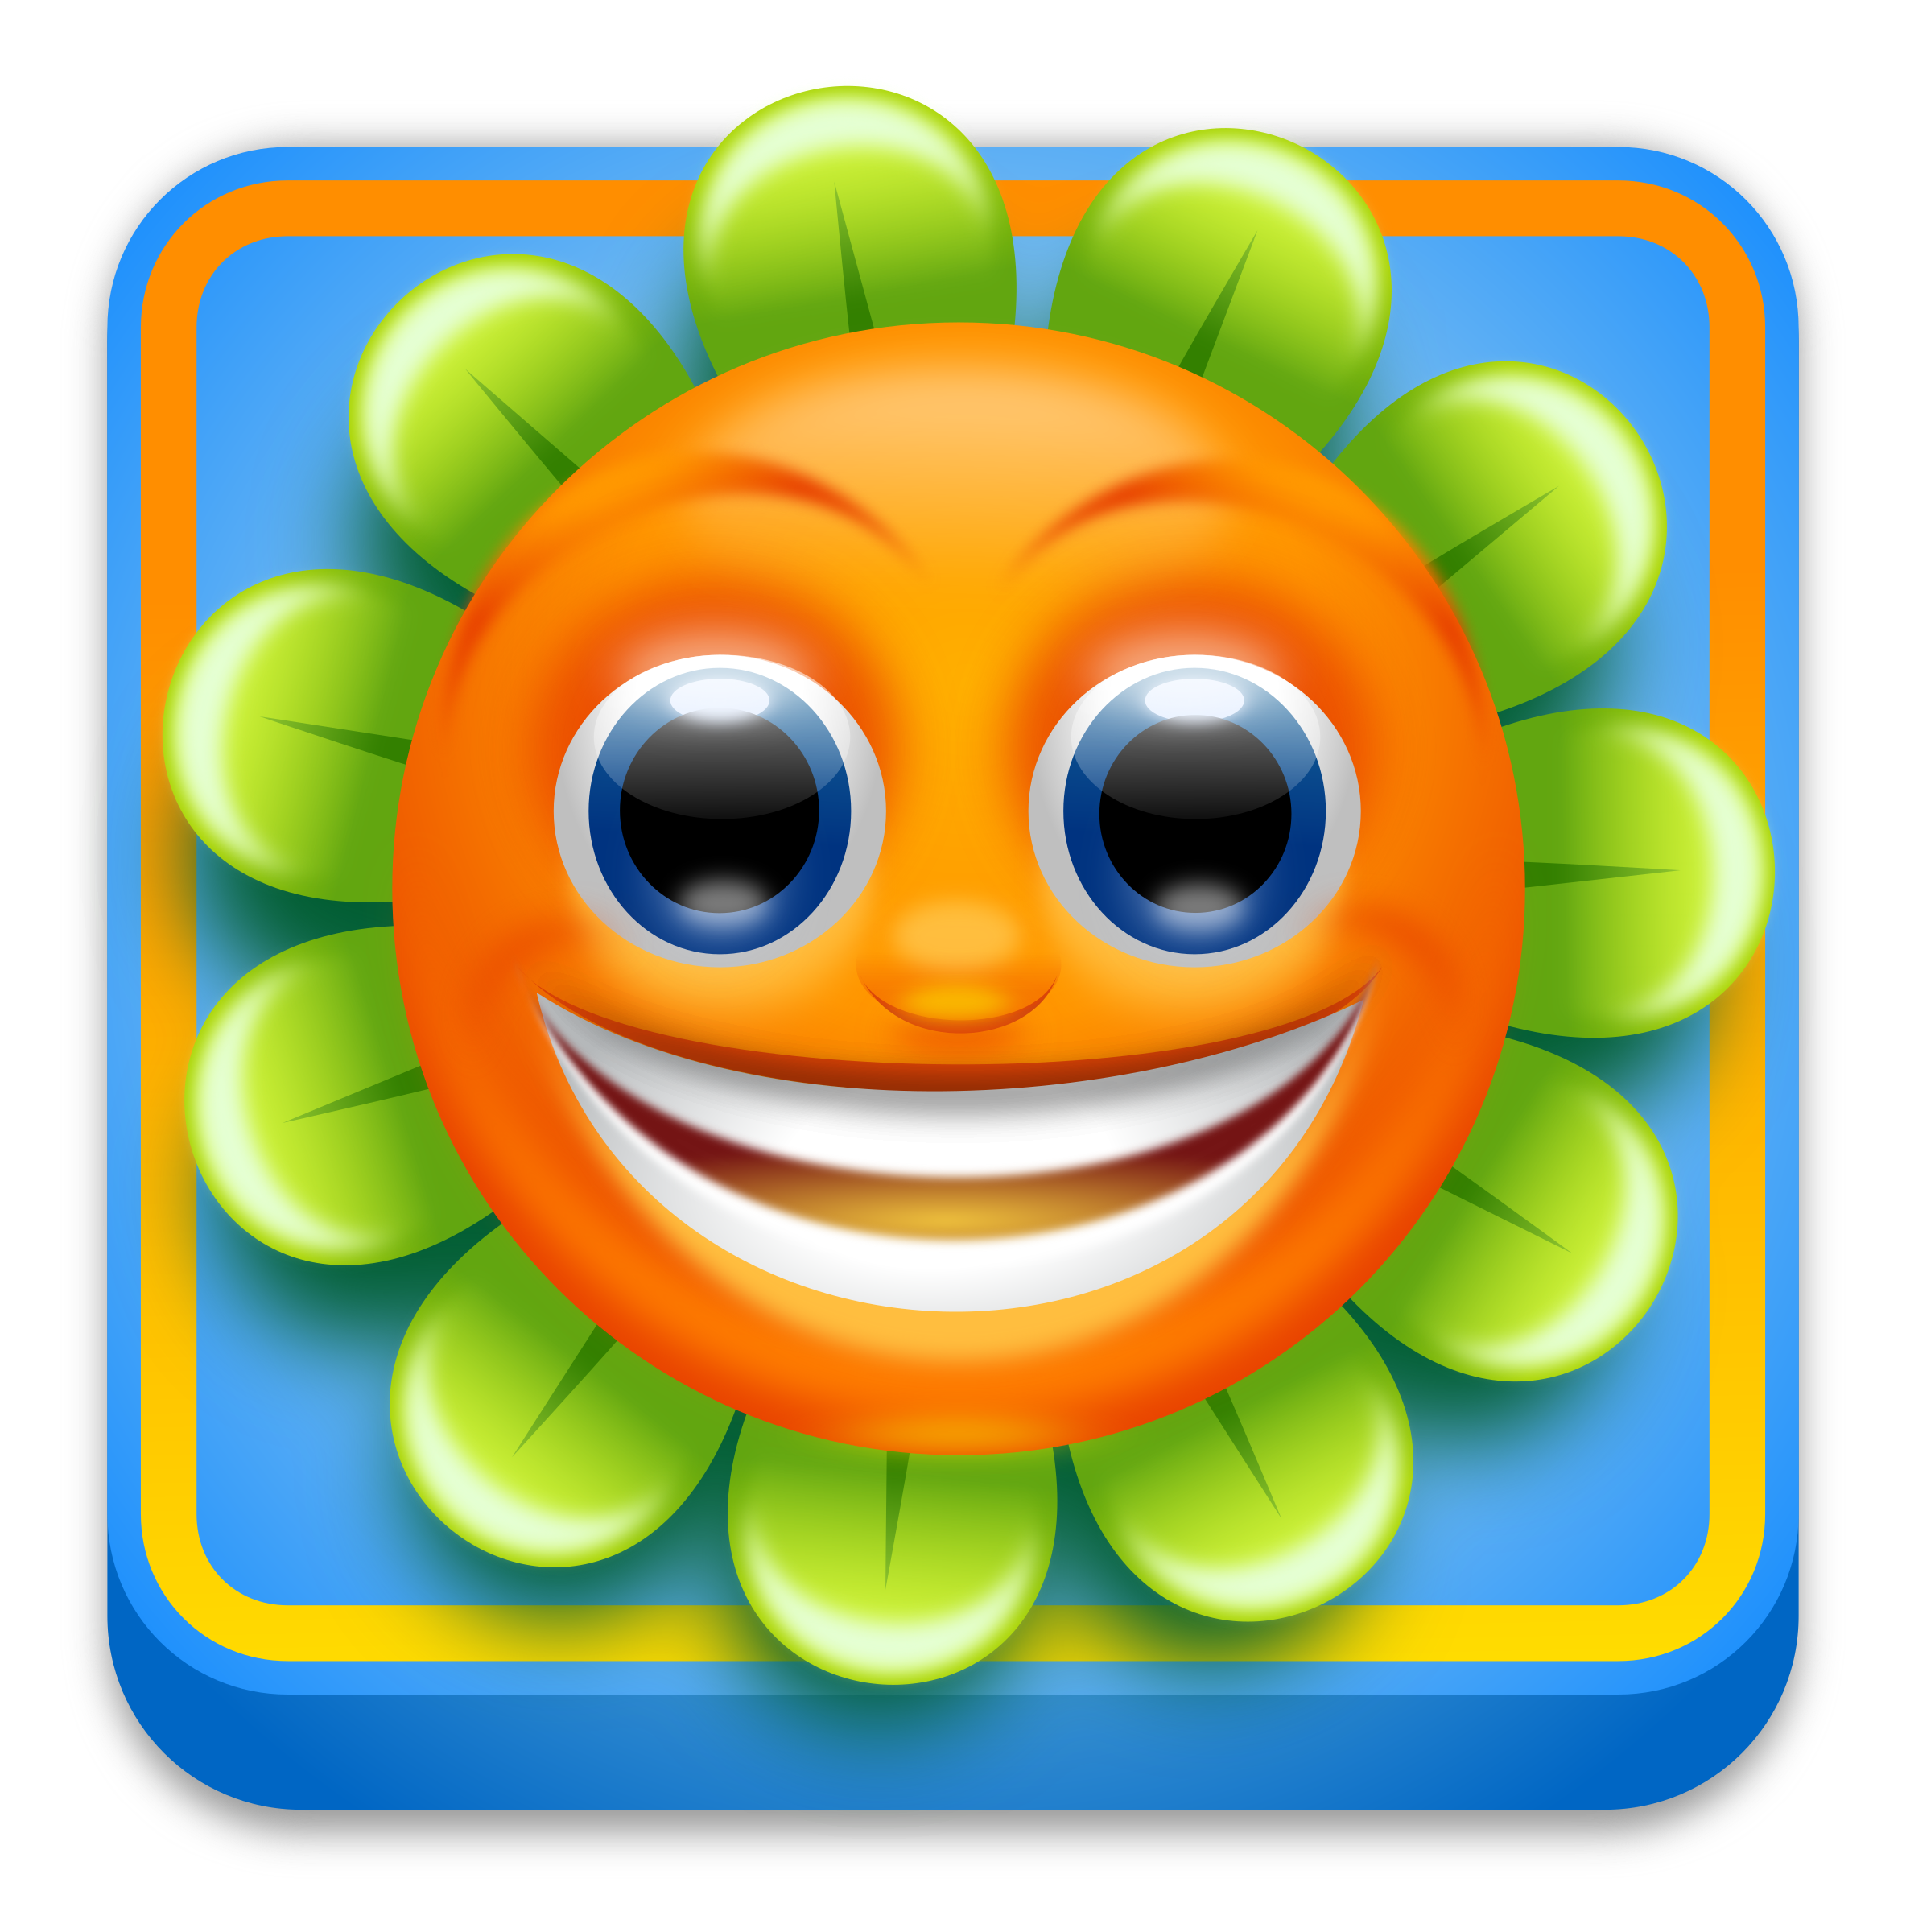 Game clipart mobile game. App icon d style